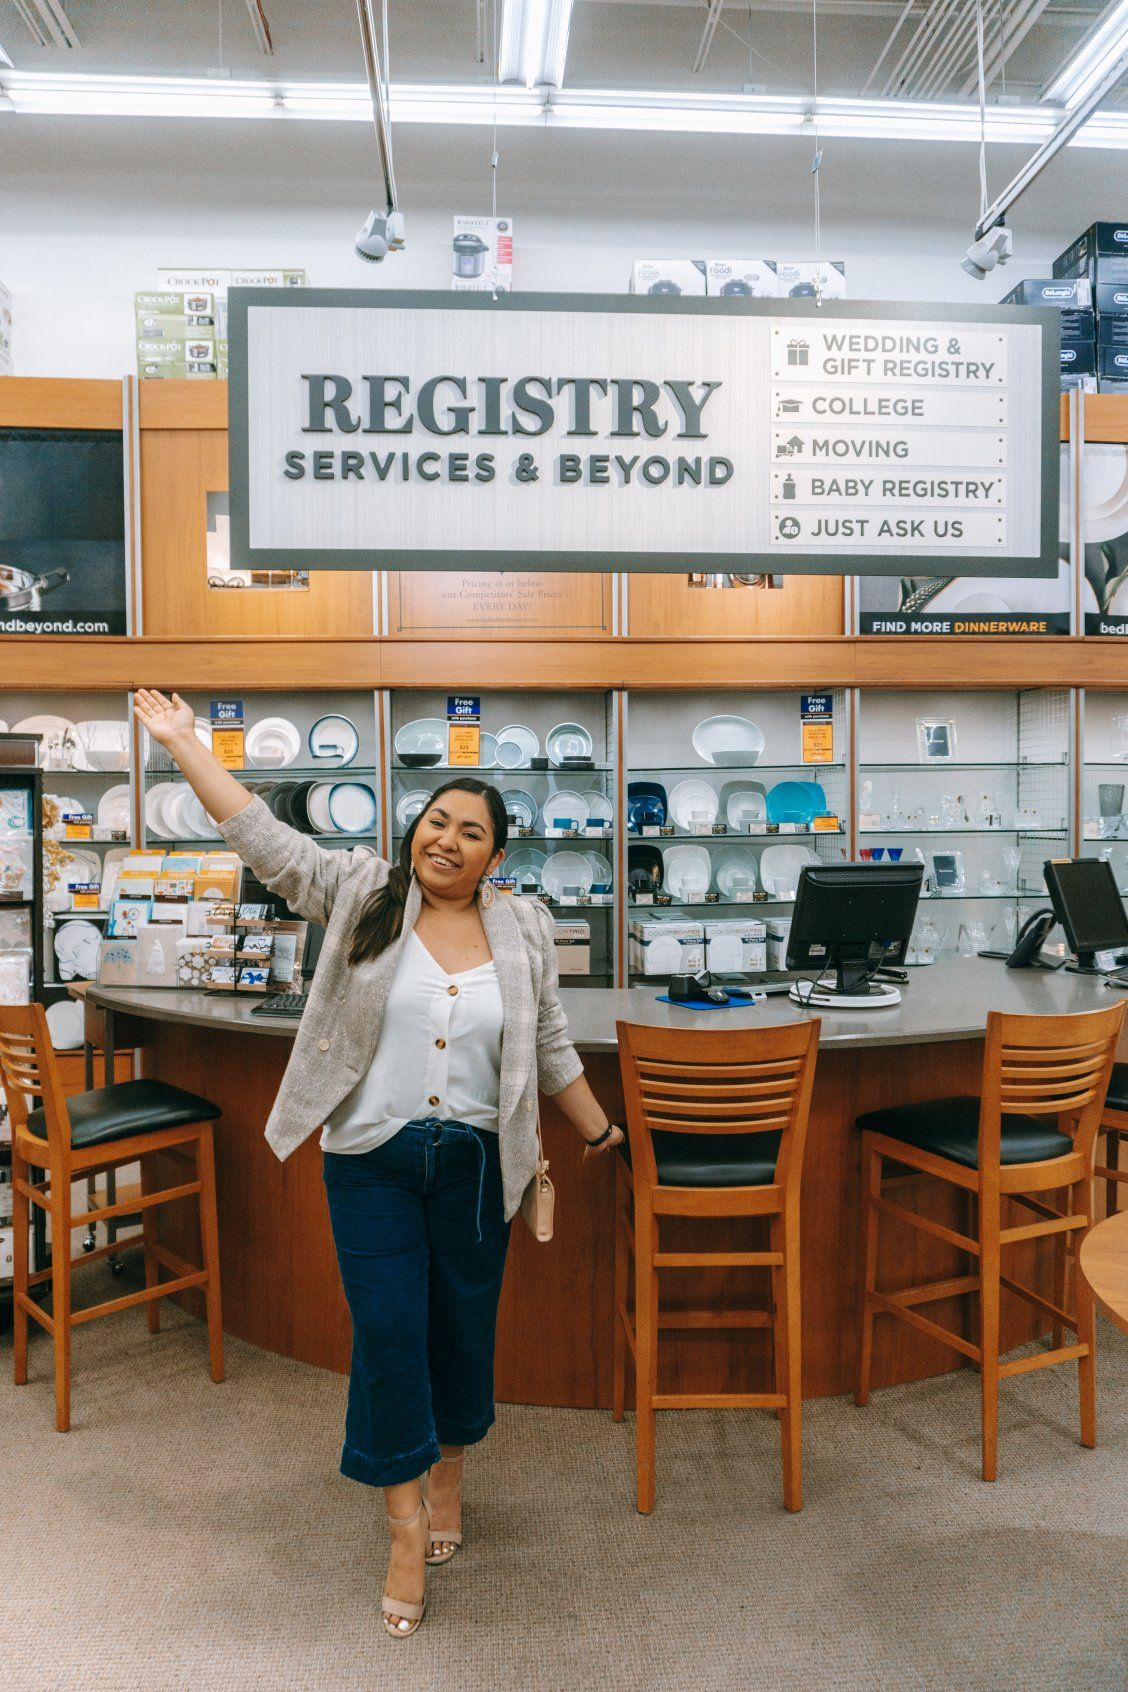 Wedding Registry With Bed Bath Beyond Lovely Silvia Bed Bath And Beyond How To Make Bed Registry Inspiration